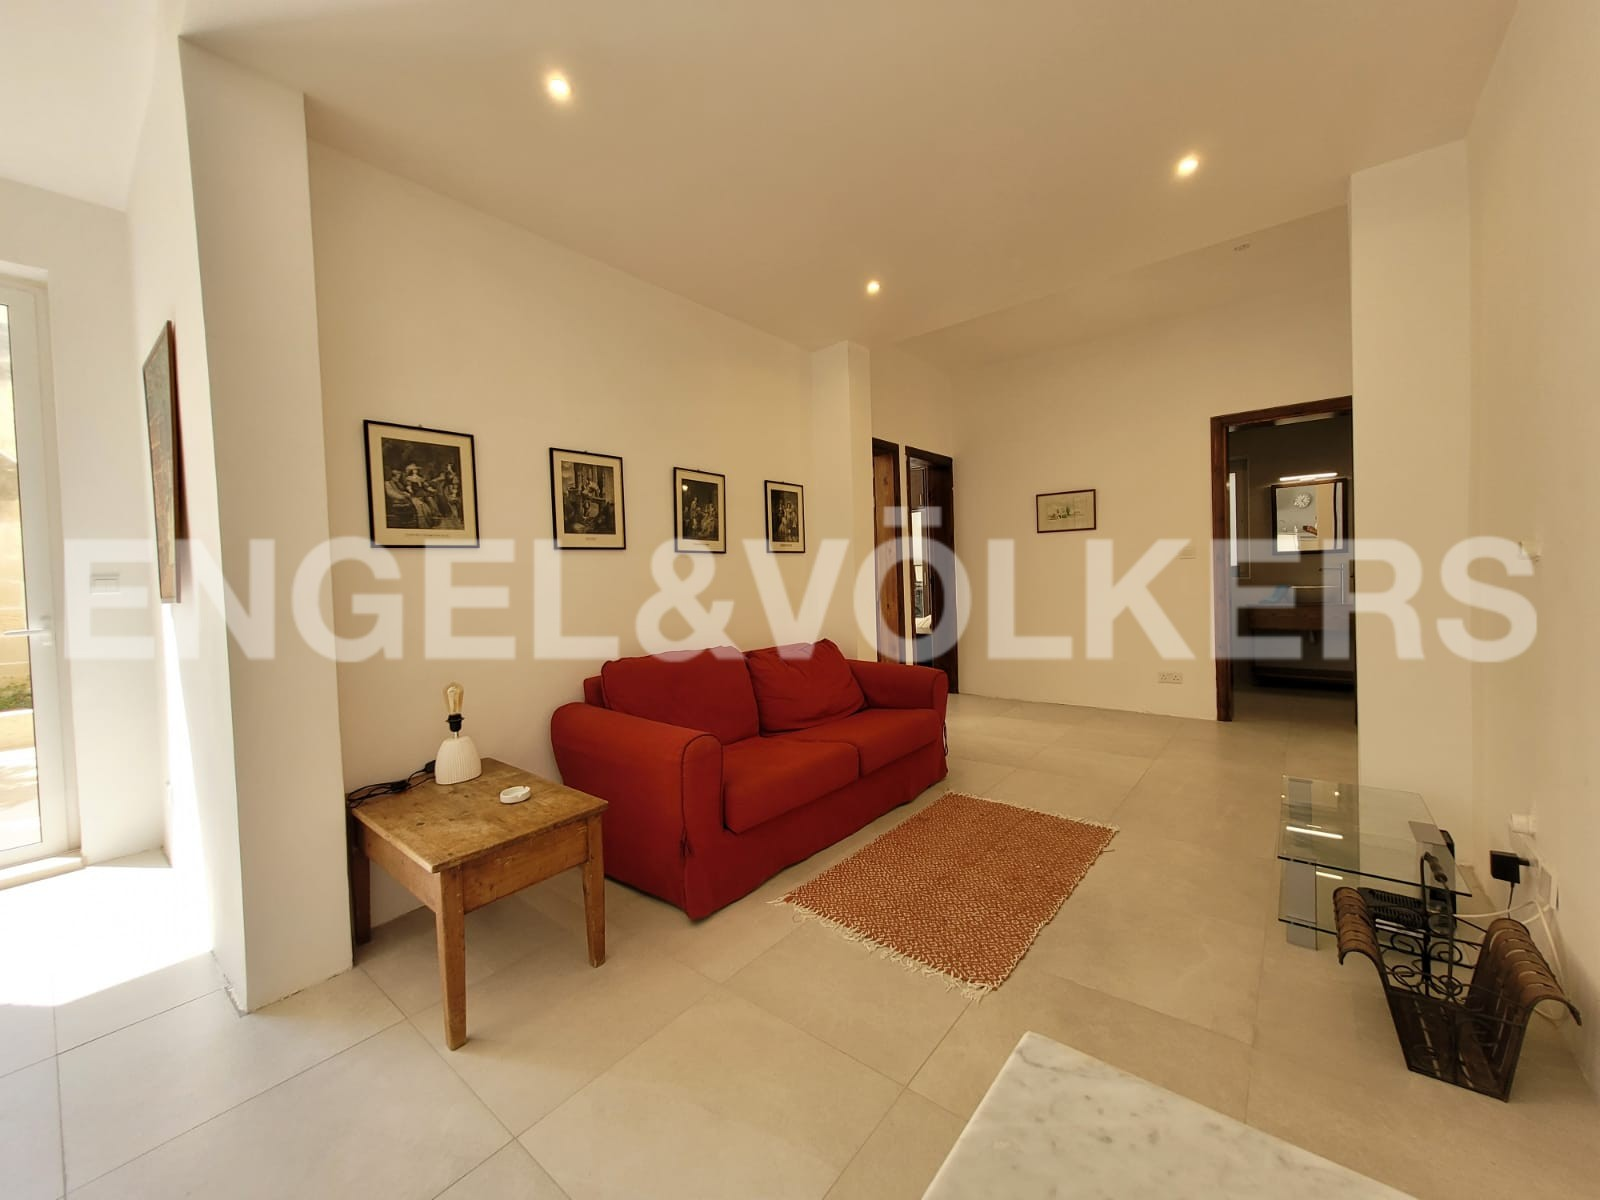 Apartment in Kappara - Living Room